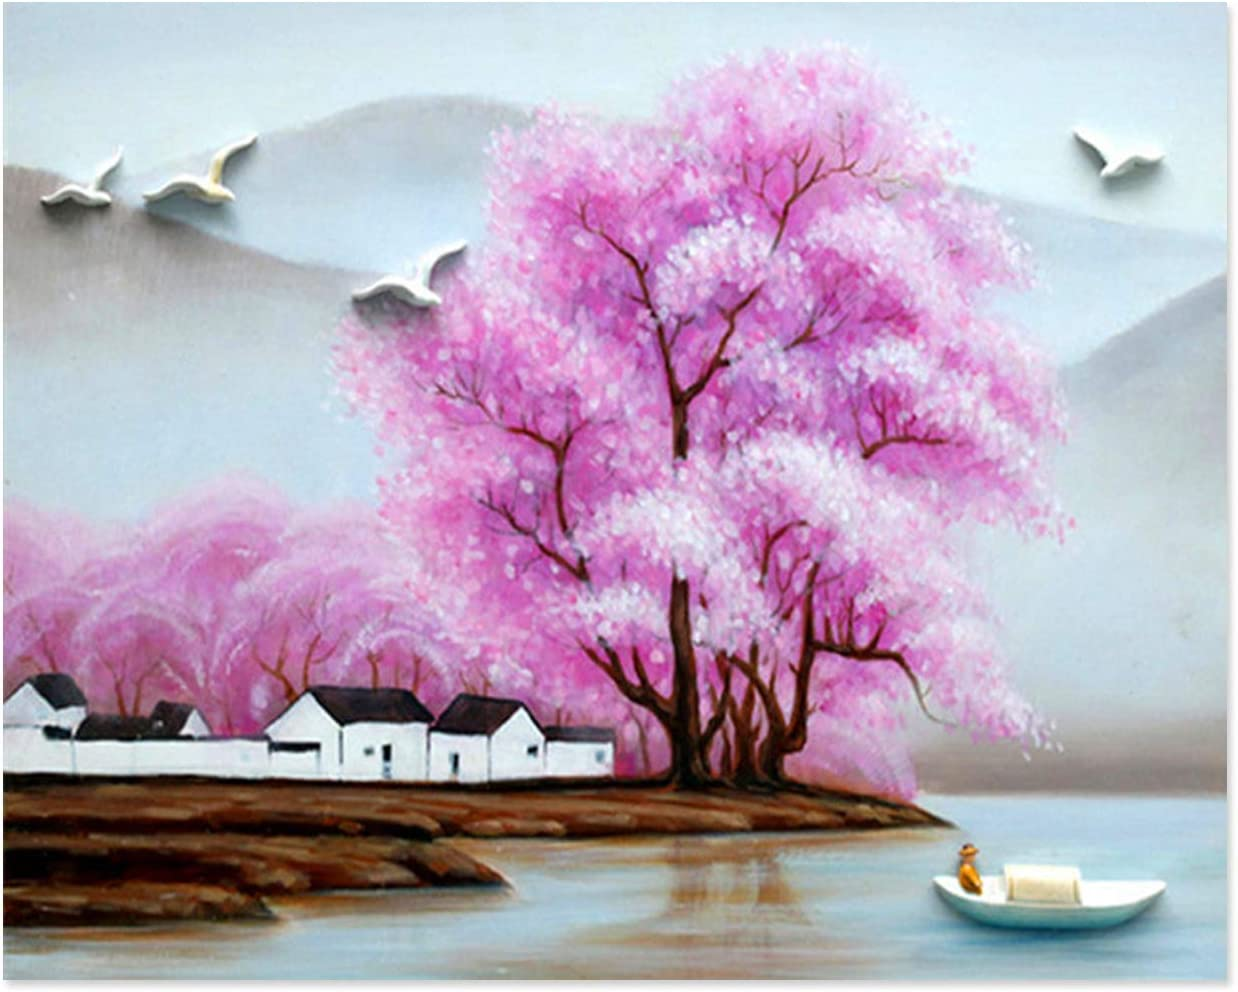 SuperDecor Paint by Number Kit DIY Oil Painting for Adults Kids Beginner Pink Flowers Tree by Sea Landscape 16x20